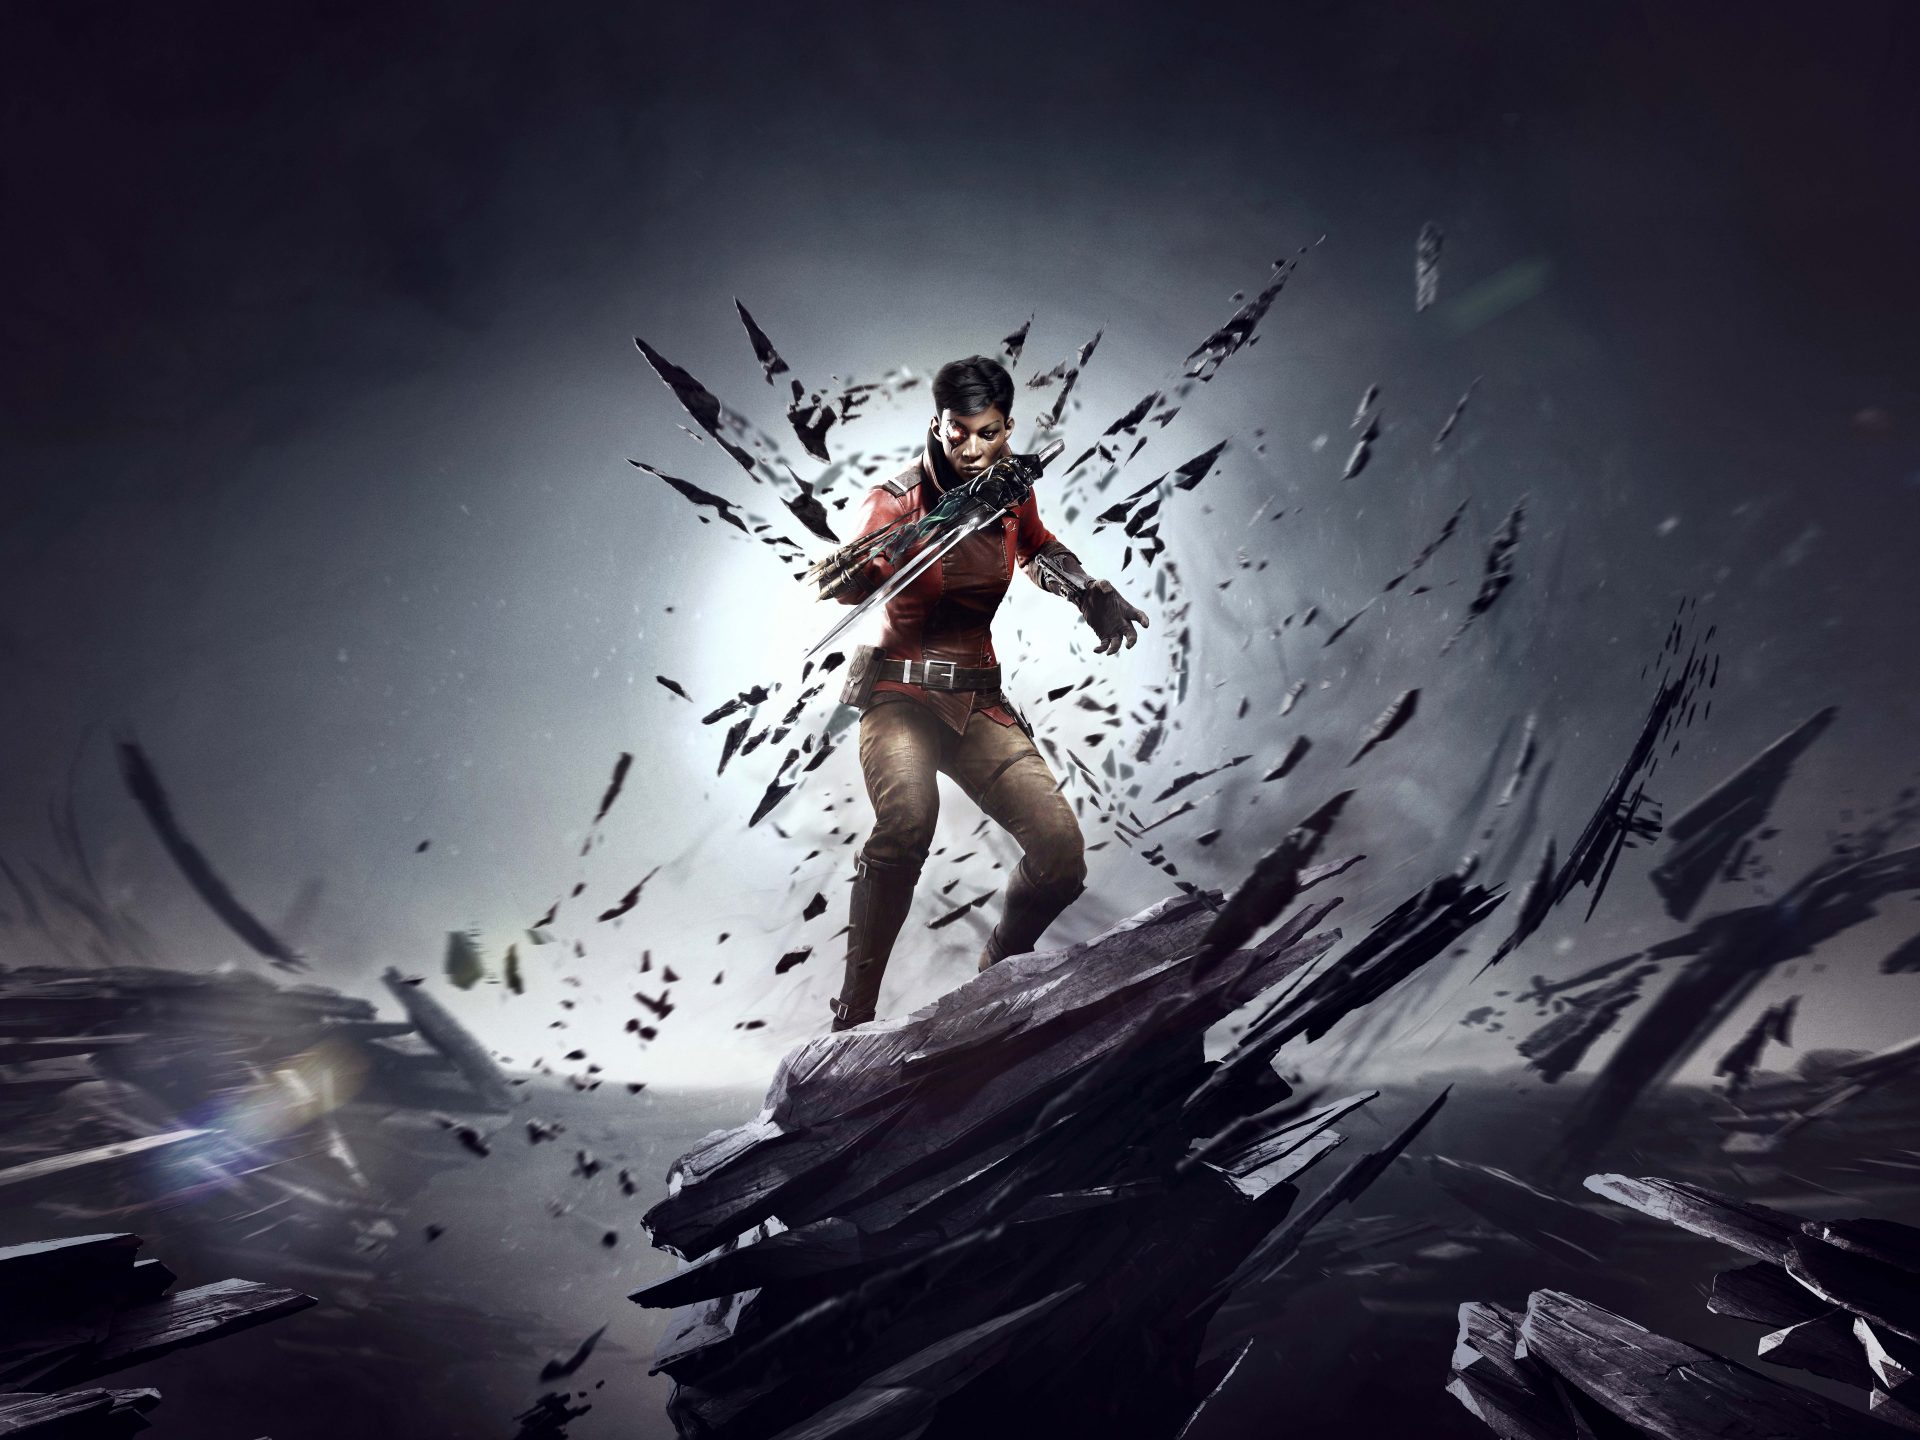 Dishonored Death Of The Outsider 4K 8K - Download hd ...